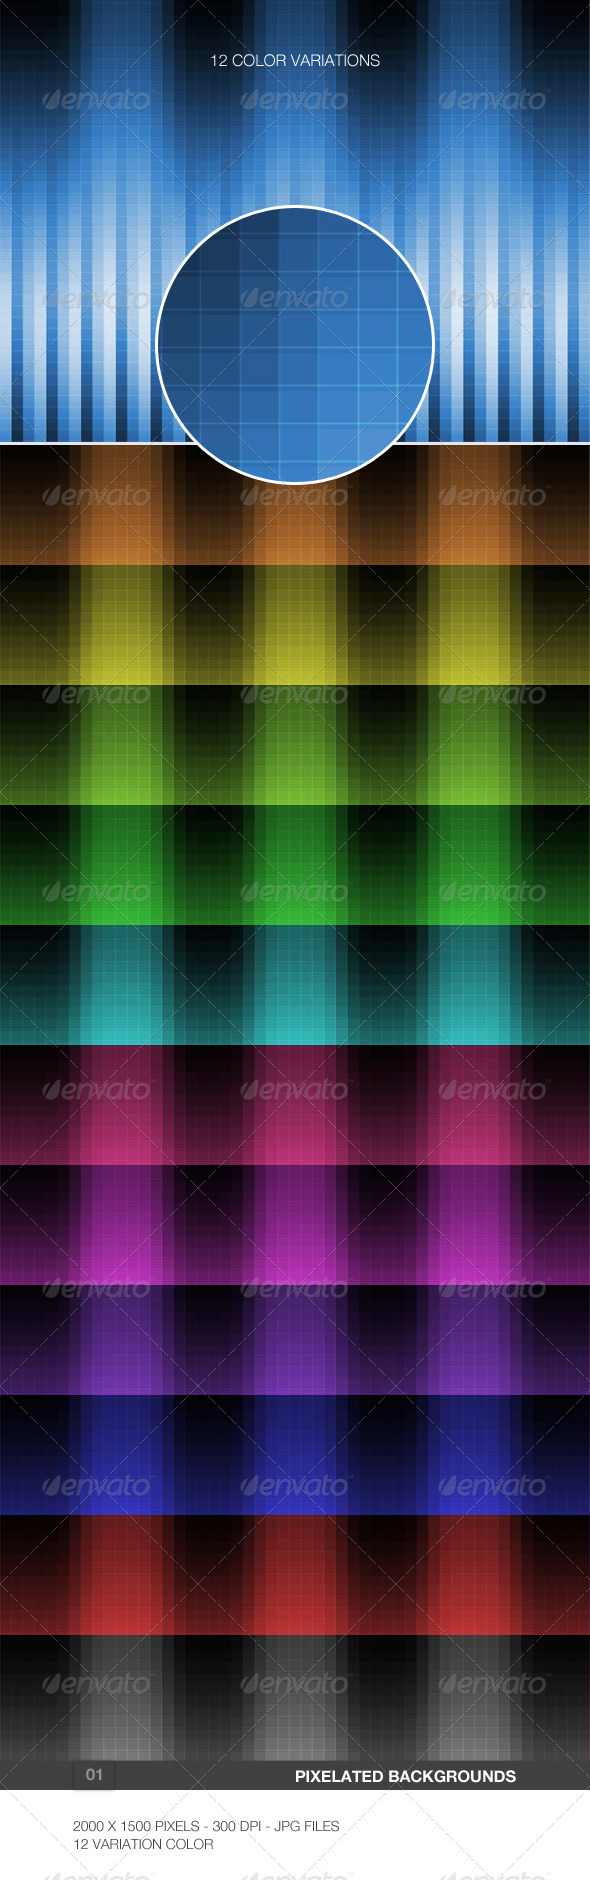 Pixelated Backgrounds - 01 - Abstract Backgrounds